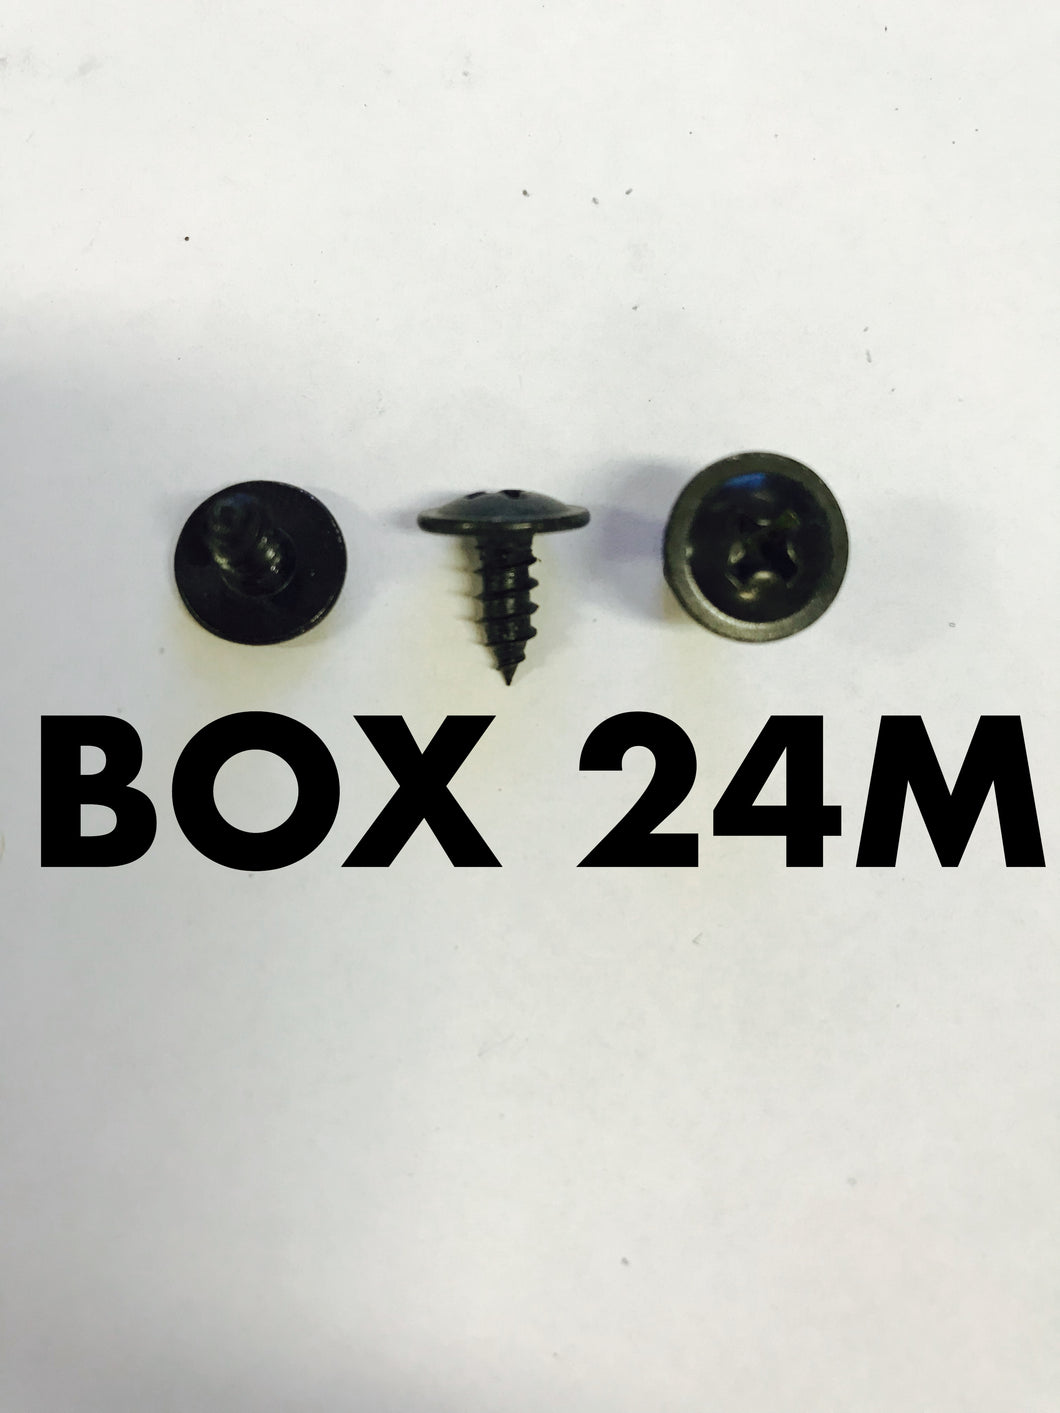 Carclips Box 24M 8g x 10mm Screws - Colourfast Auto